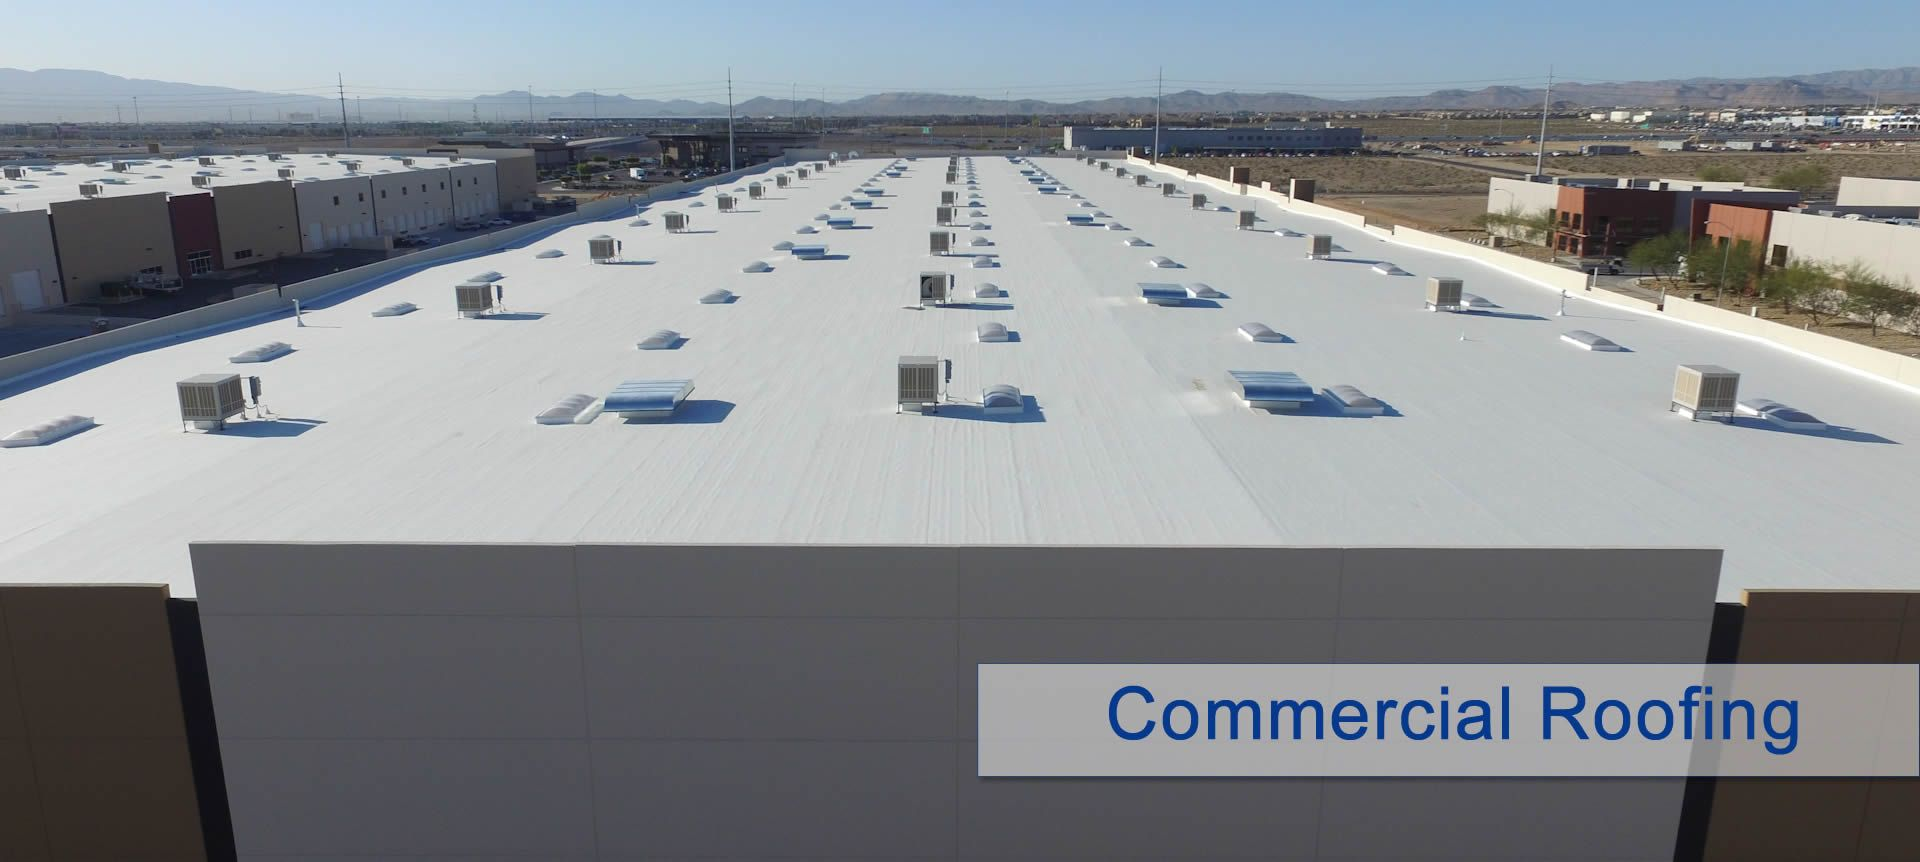 Commercial Roofing In Dallas Fort Worth Tx Commercial Roofing Roofing Roofer